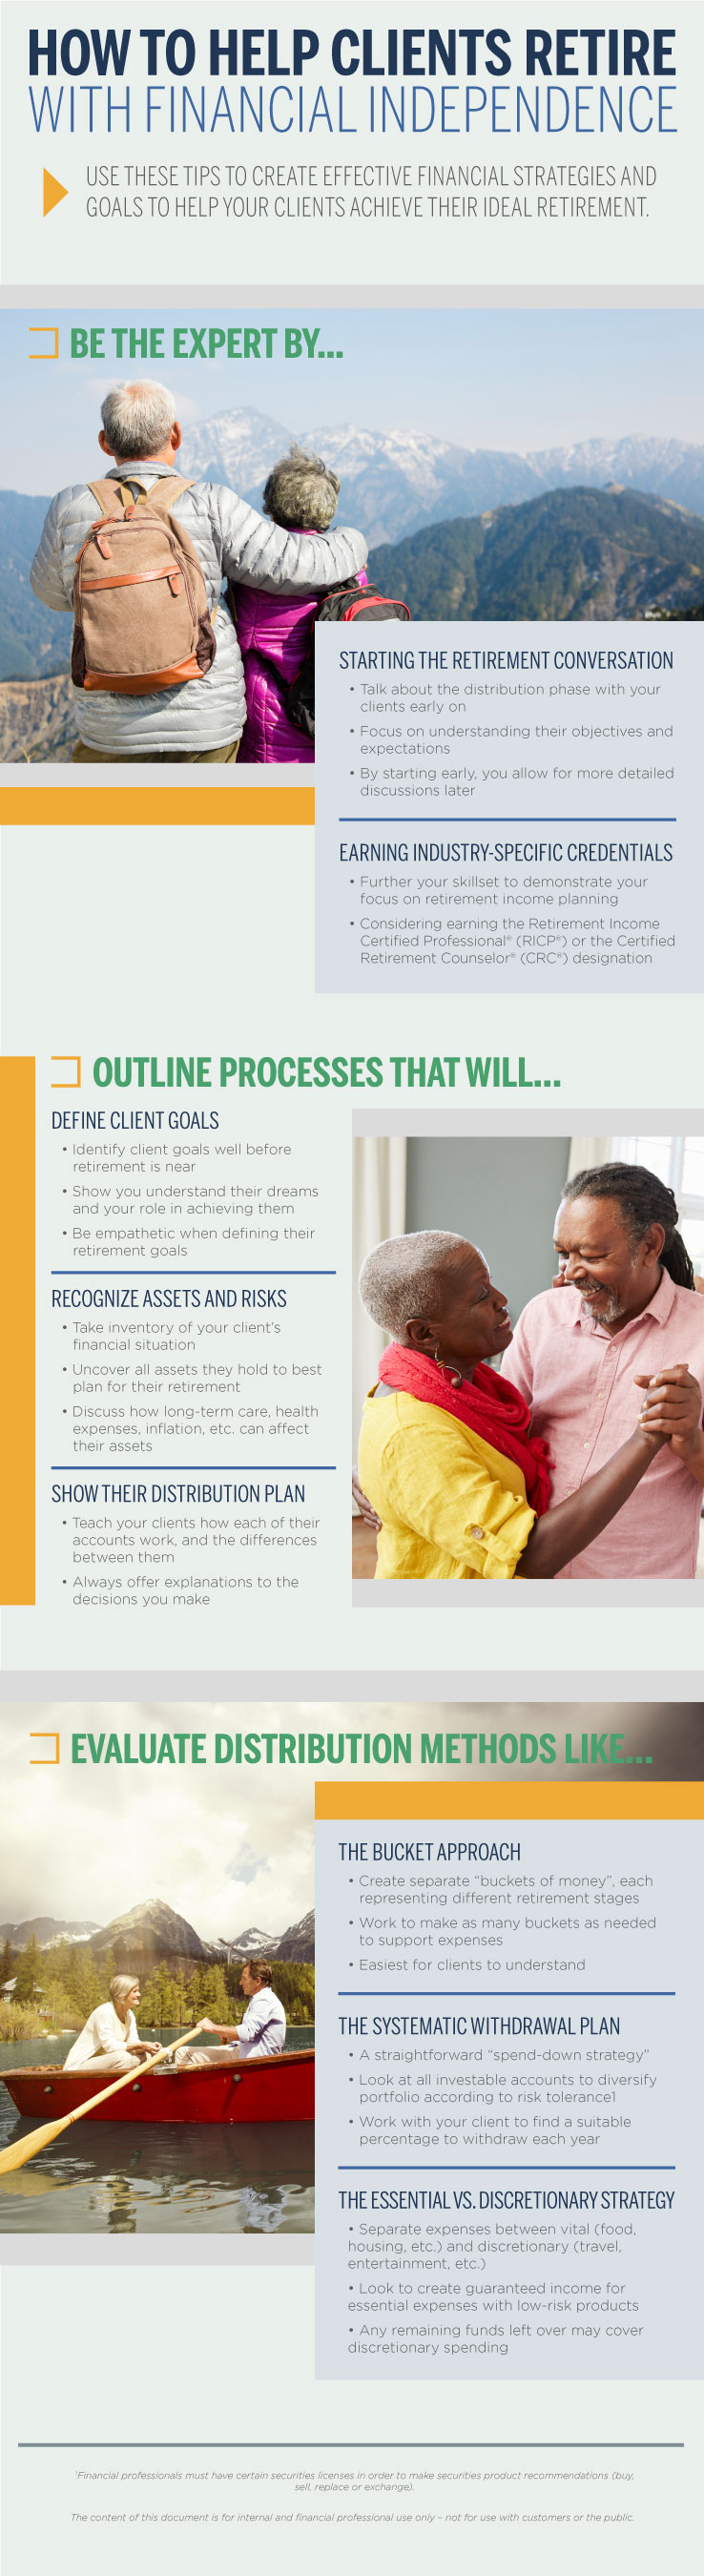 how to help clients retire with financial independence infographic